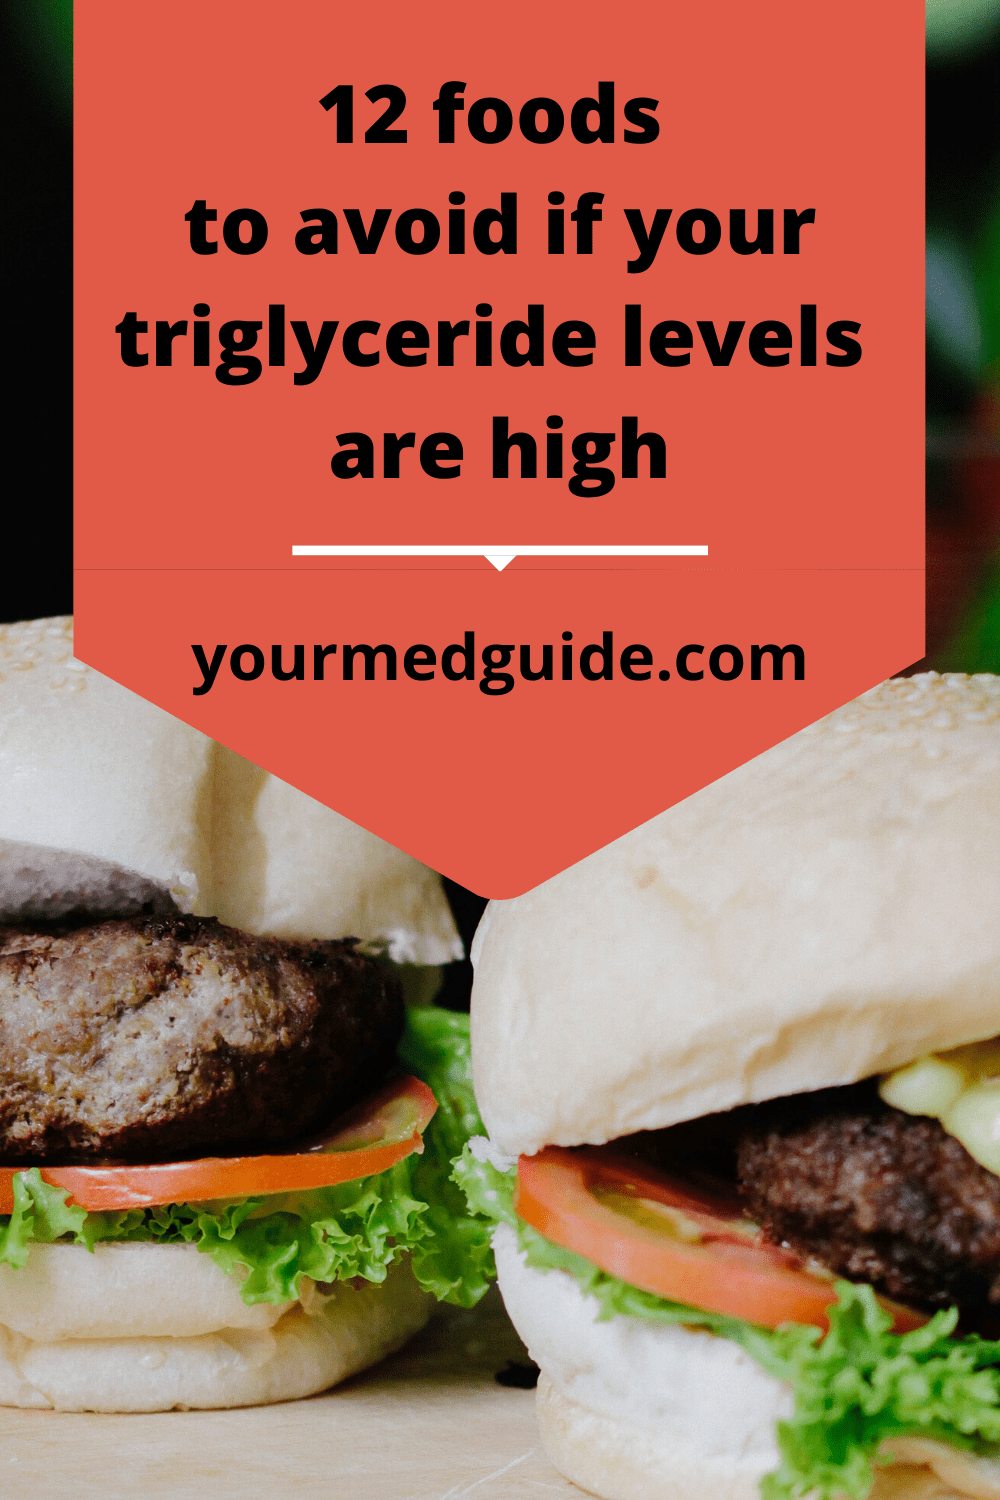 12 foods to avoid for high triglyceride levels